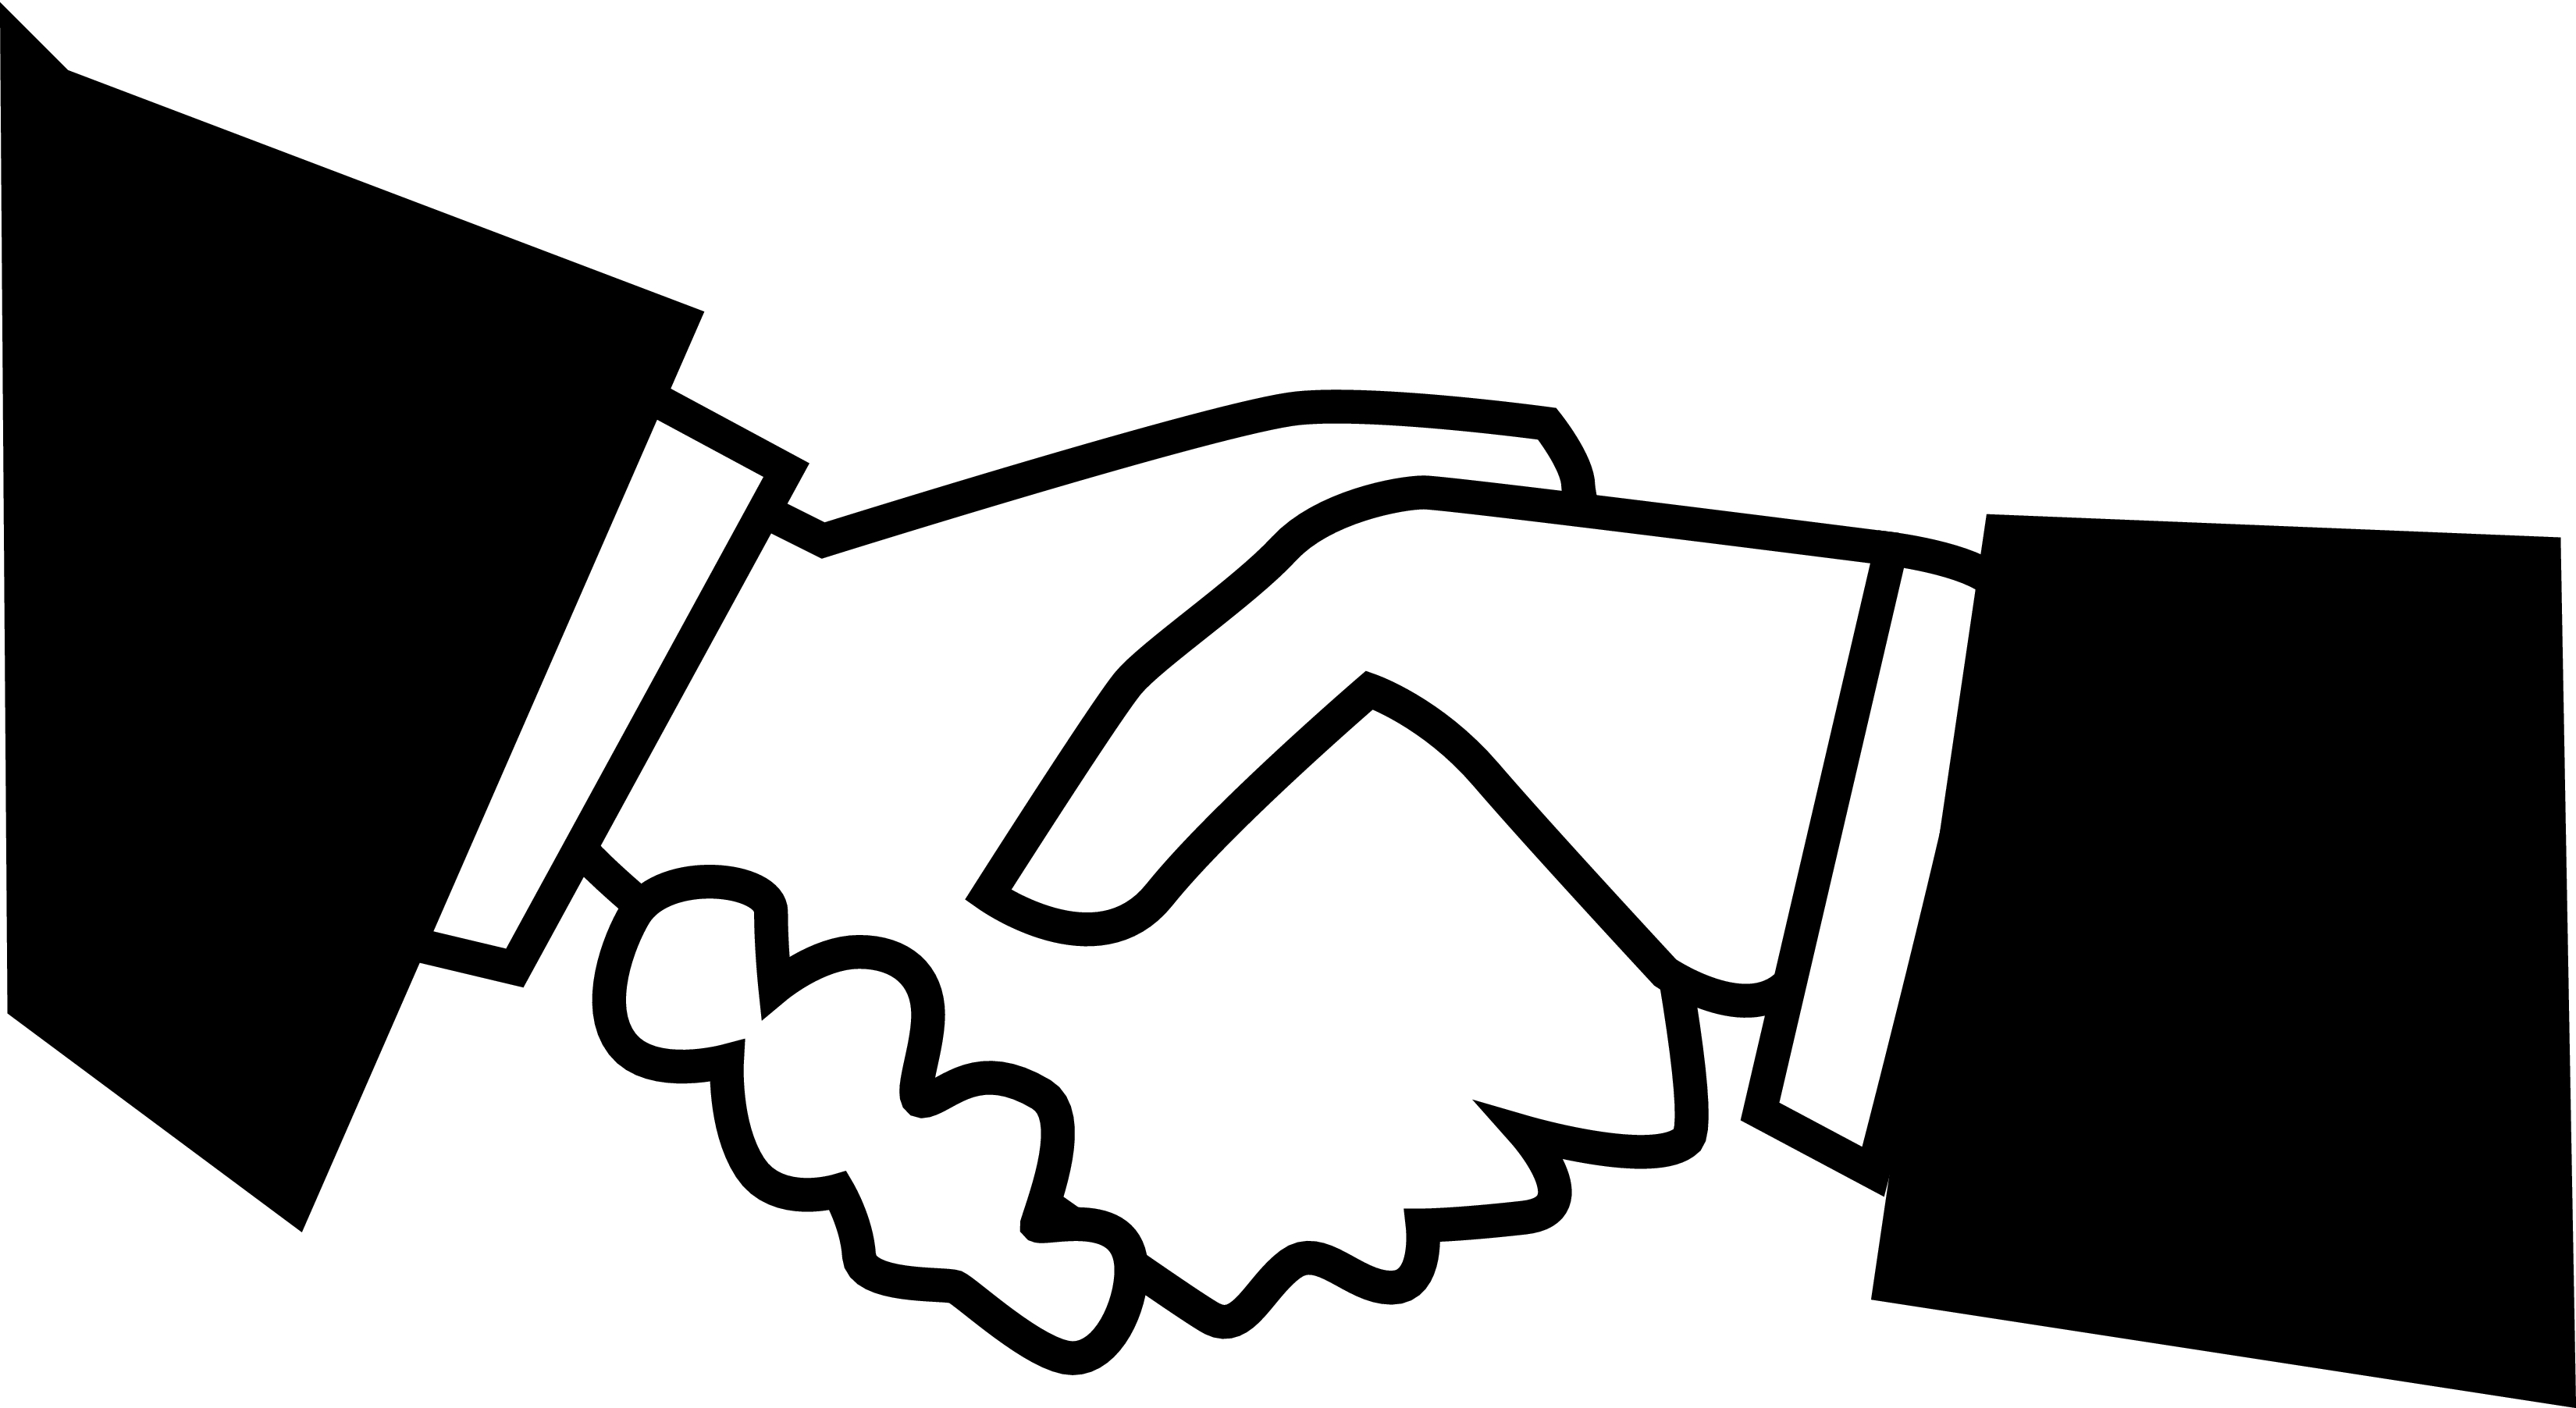 hand shake clip art clipart best scale of justice clip art free Free Silhouette Clip Art Scales of Justice